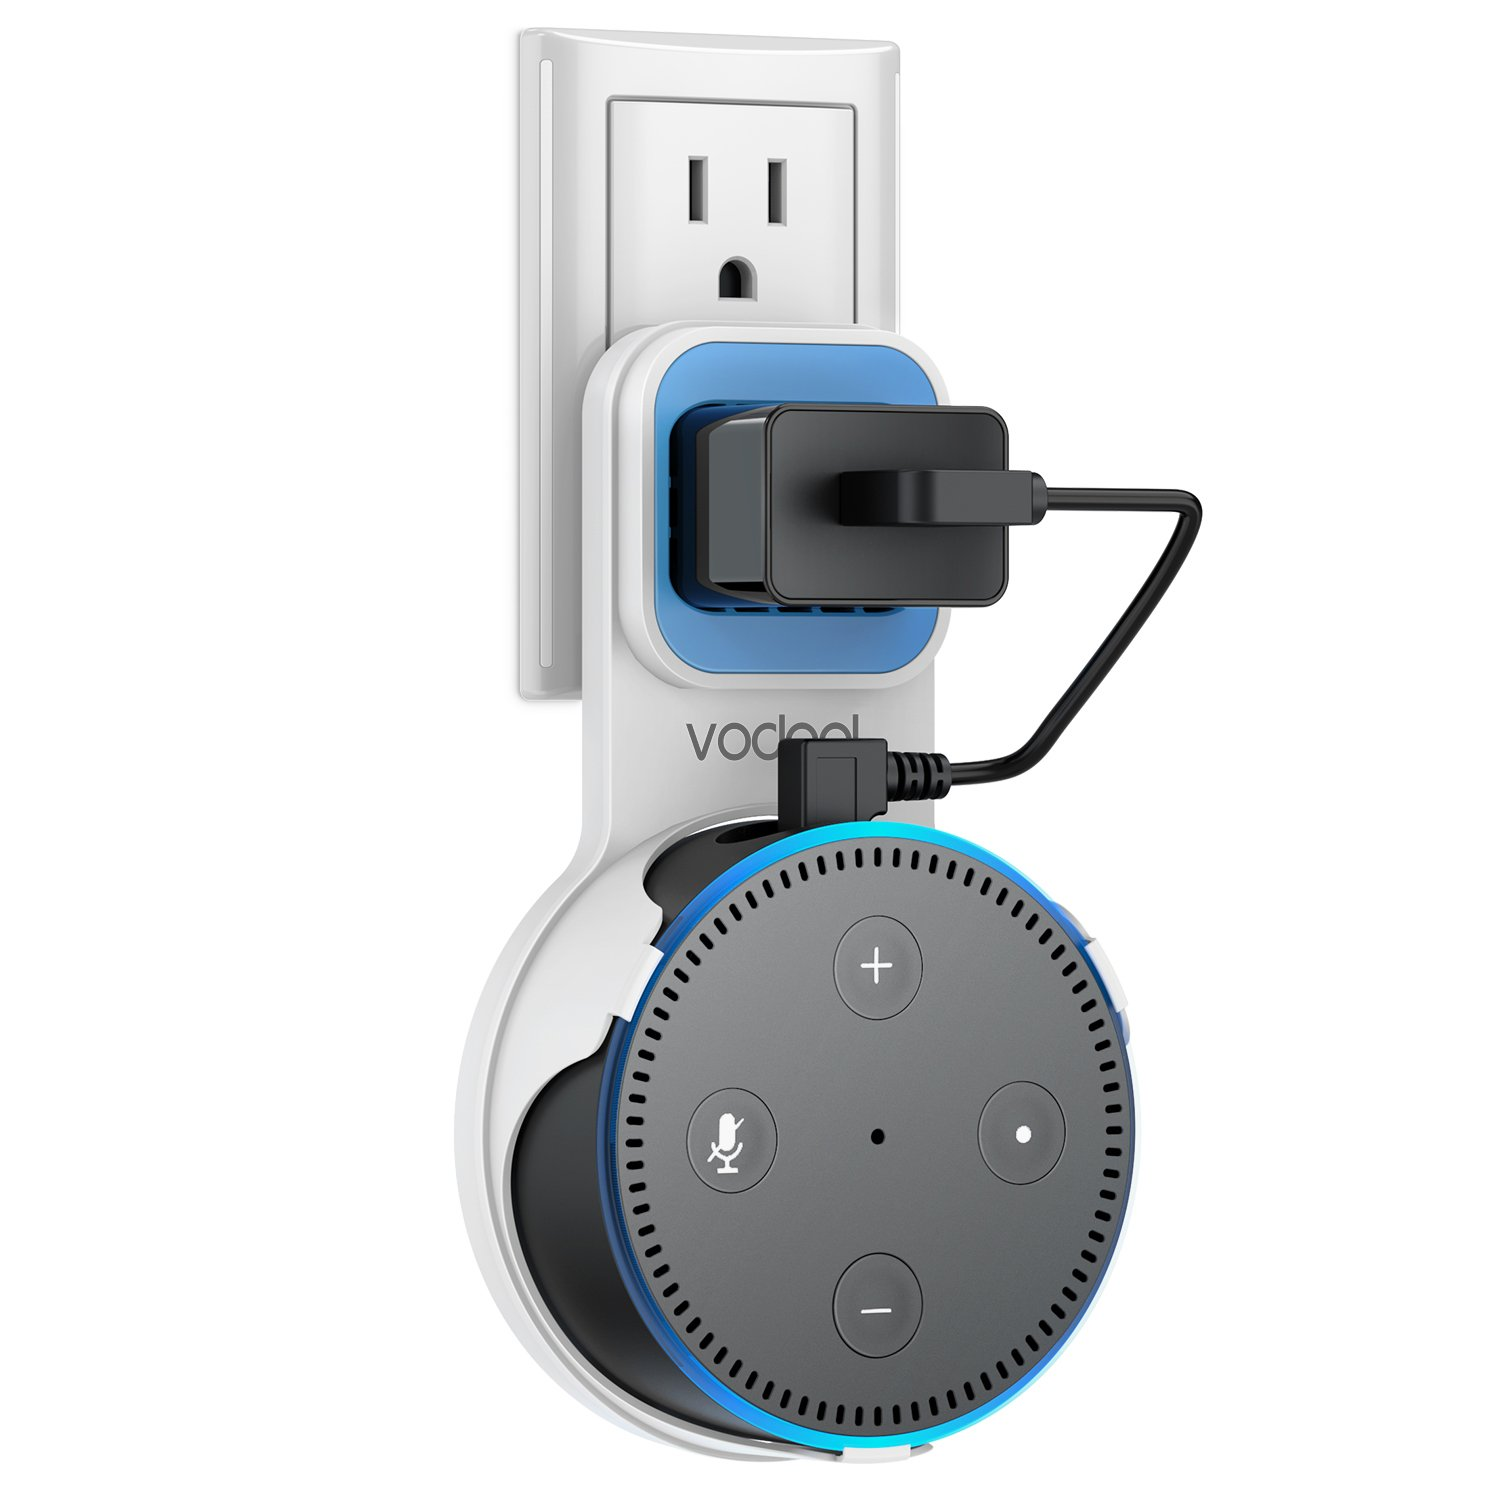 Wall Mount Stand for Echo Dot 2nd Generation, Vodool Hanger Holder Space-Saving Solution for Your Smart Home Speakers without Messy Wires or Screws, Charging Cable Provided - White